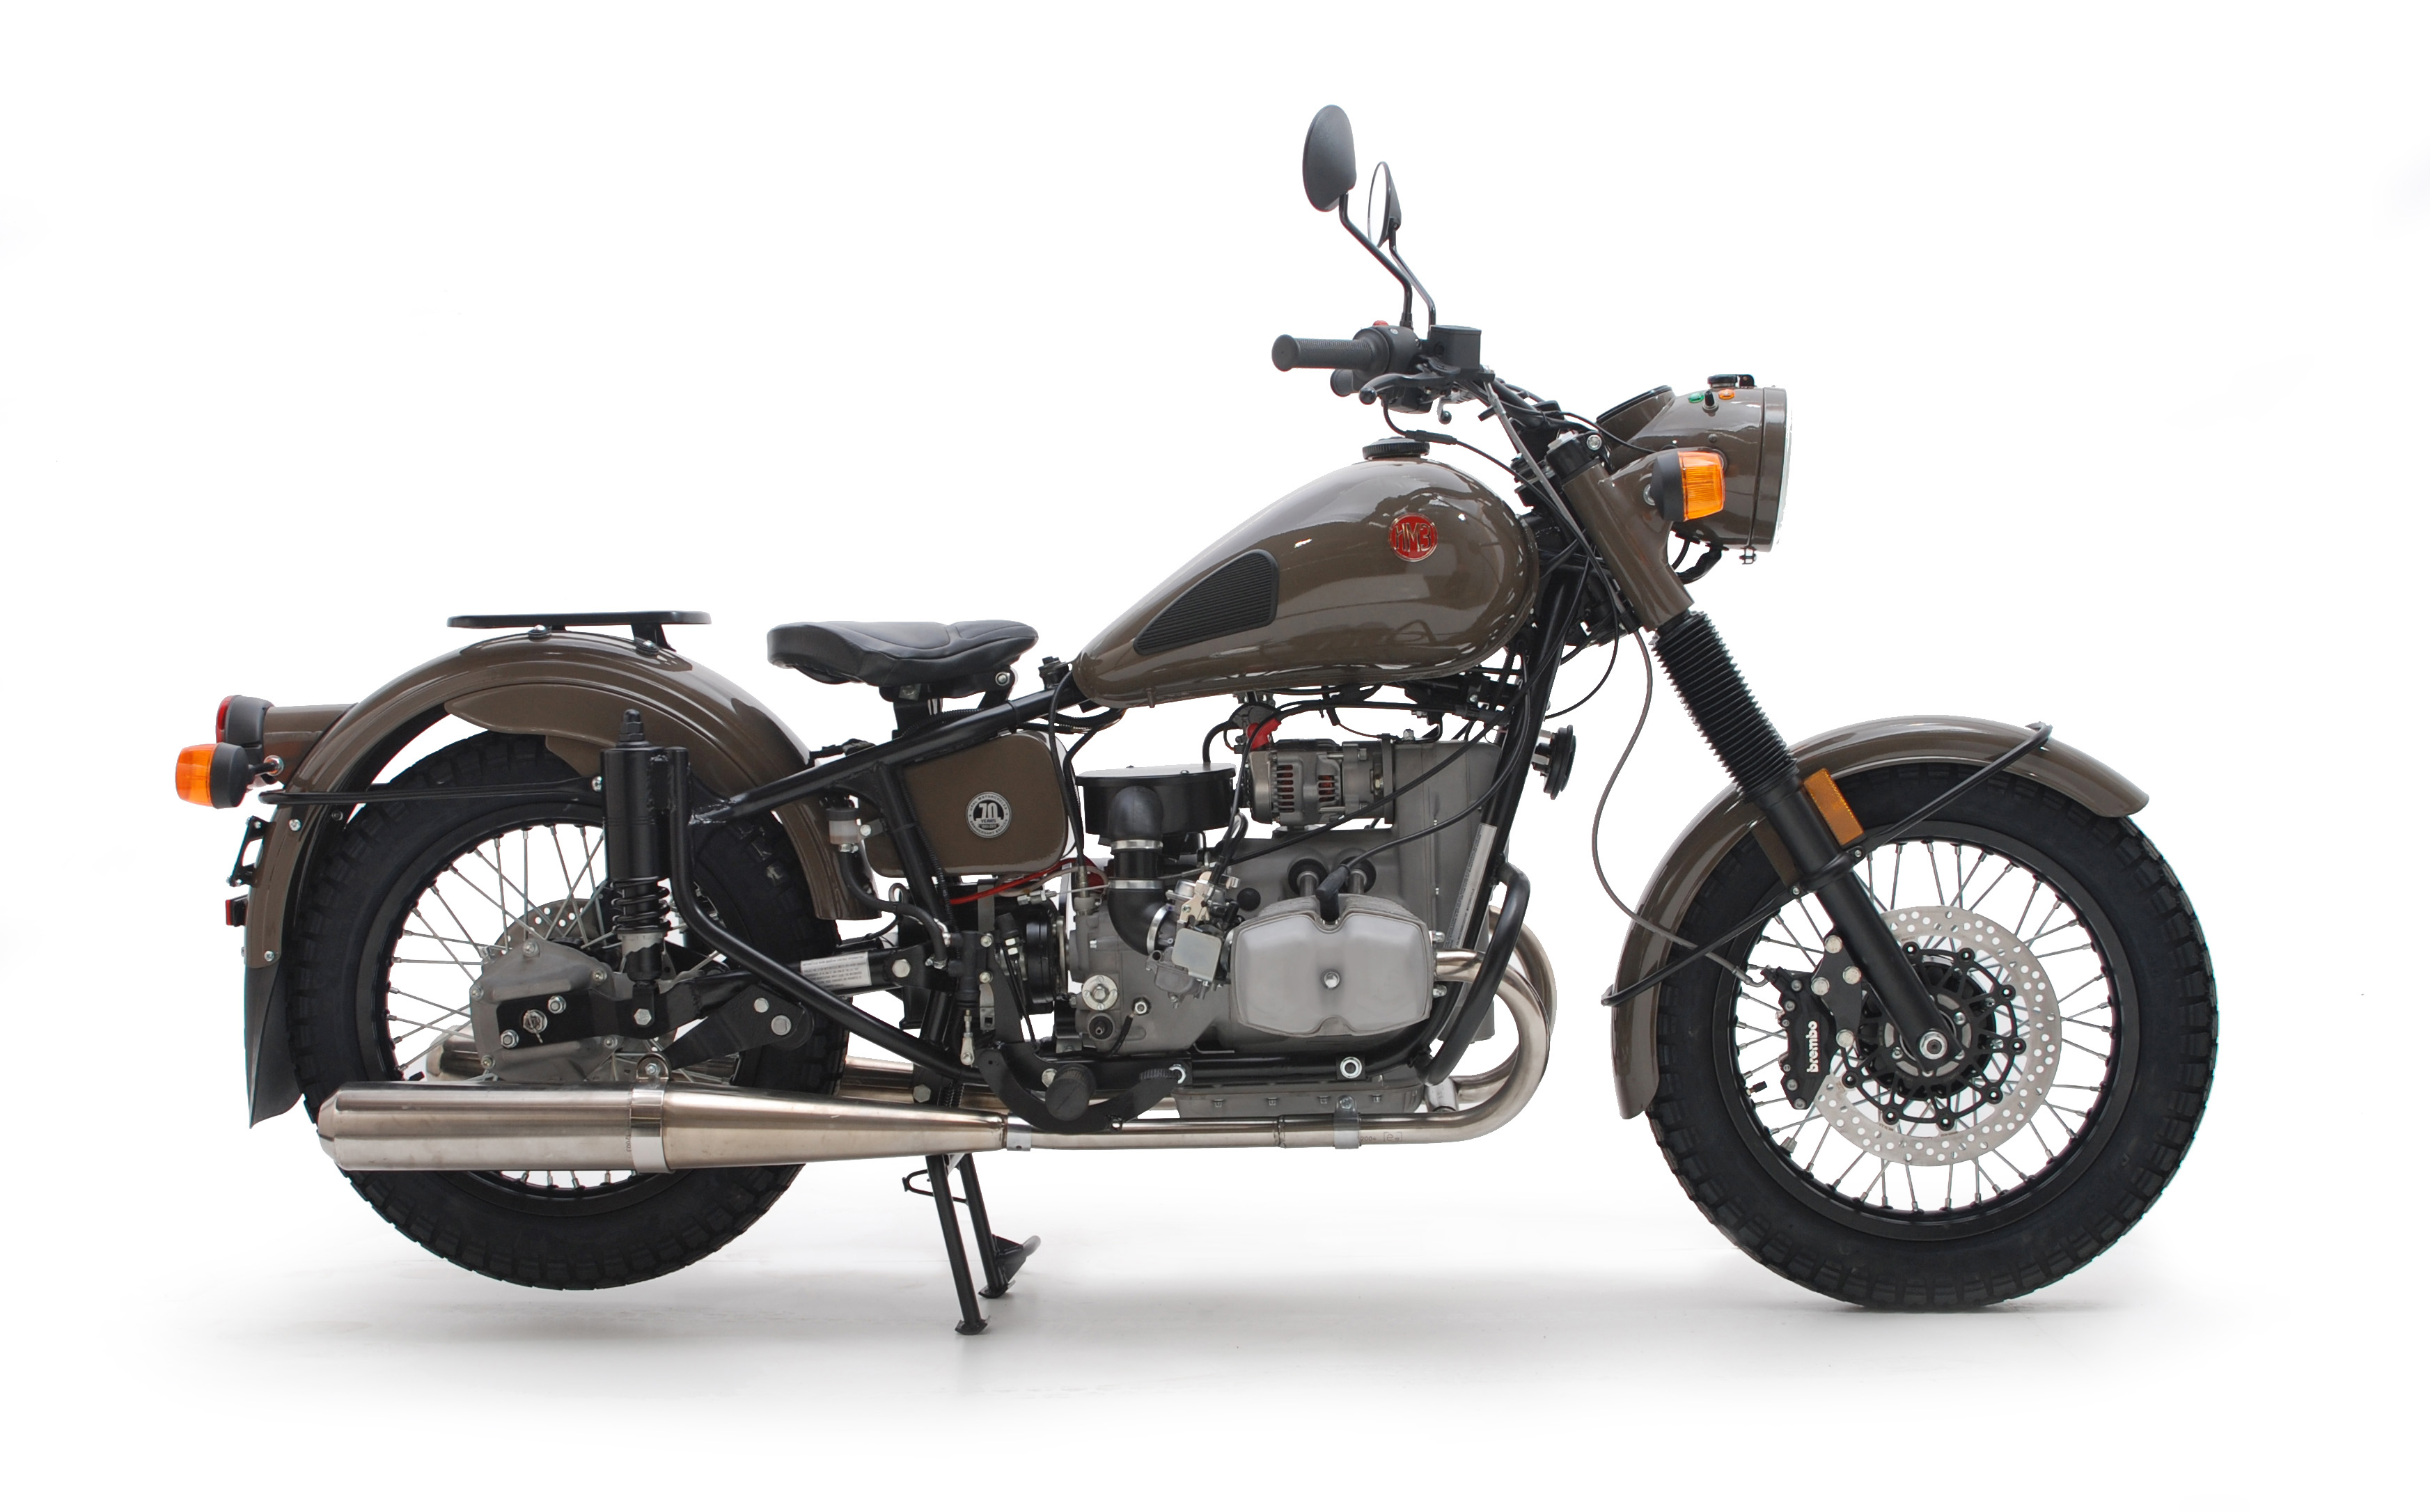 The modern day successor of the BMW R-71, the IMZ Ural M70. (Picture courtesy silodrome.com)